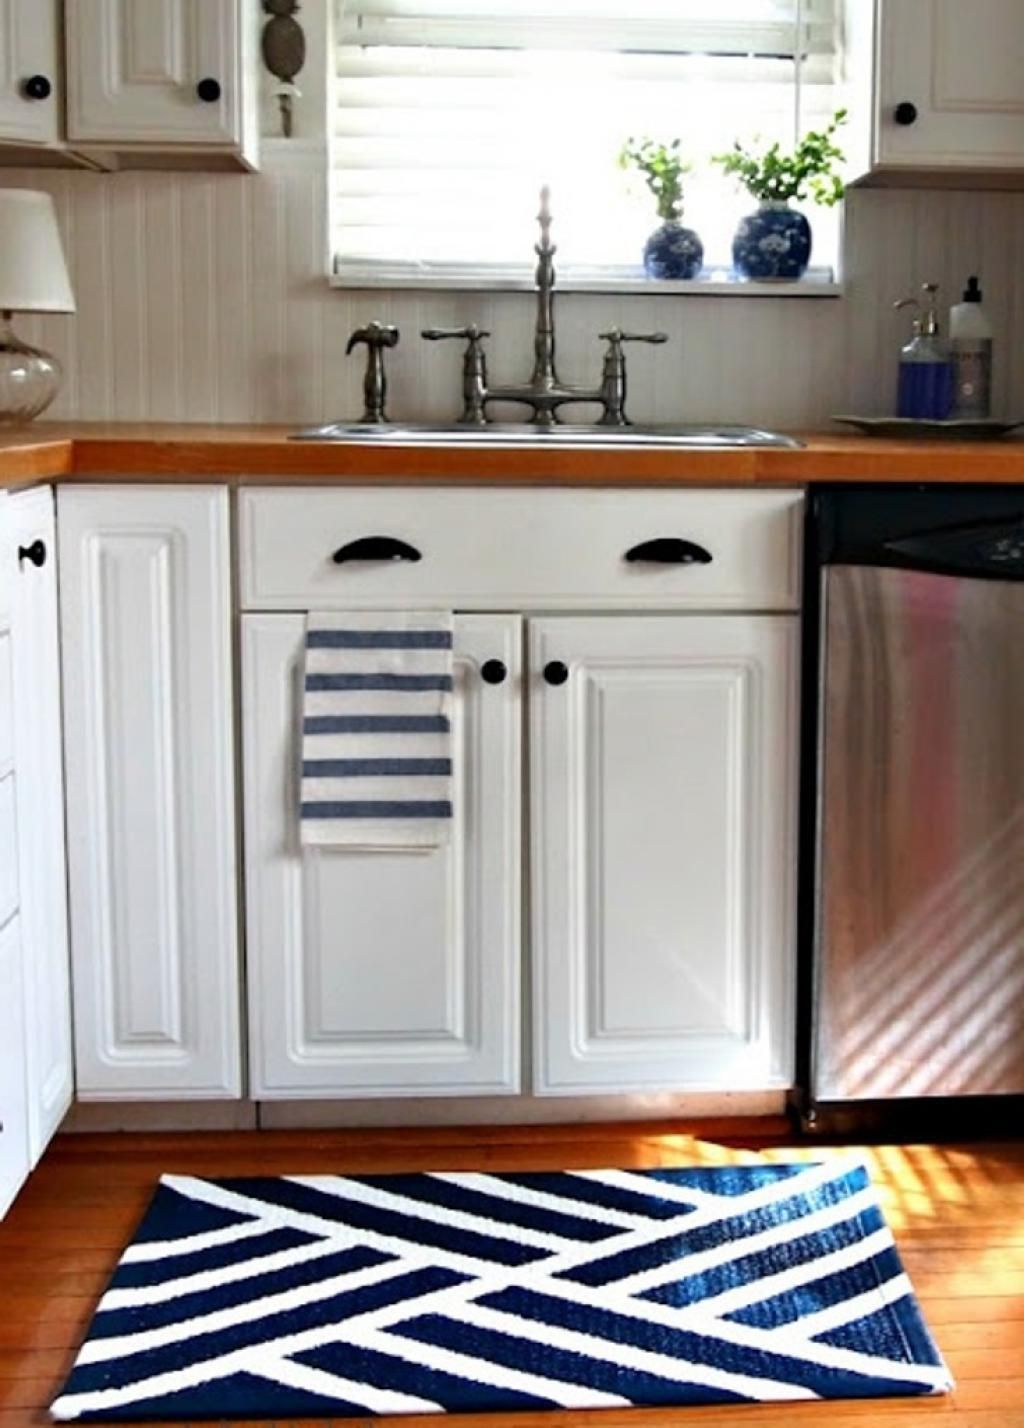 Superb Small Kitchen Area Rug In White And Blue Colors